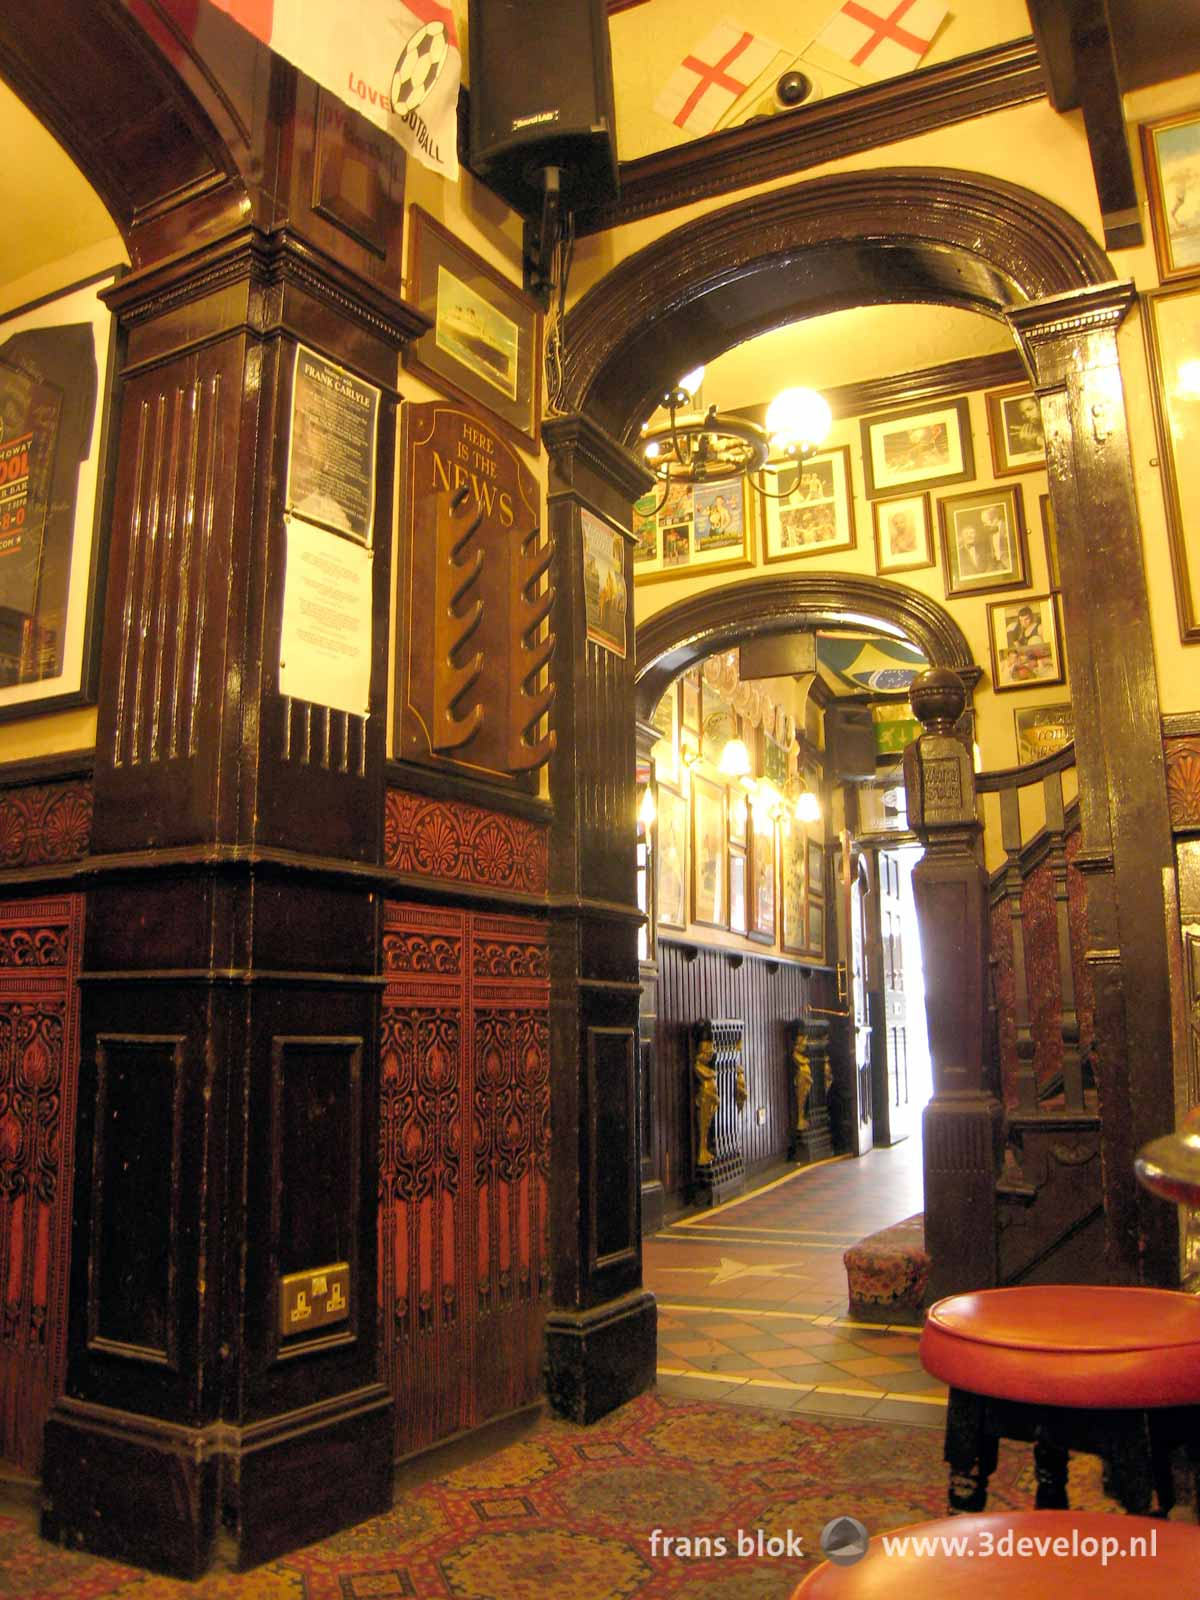 Popular on Pinterest: photo of the interior of a pub in Liverpool, frequented by the Beatles and others